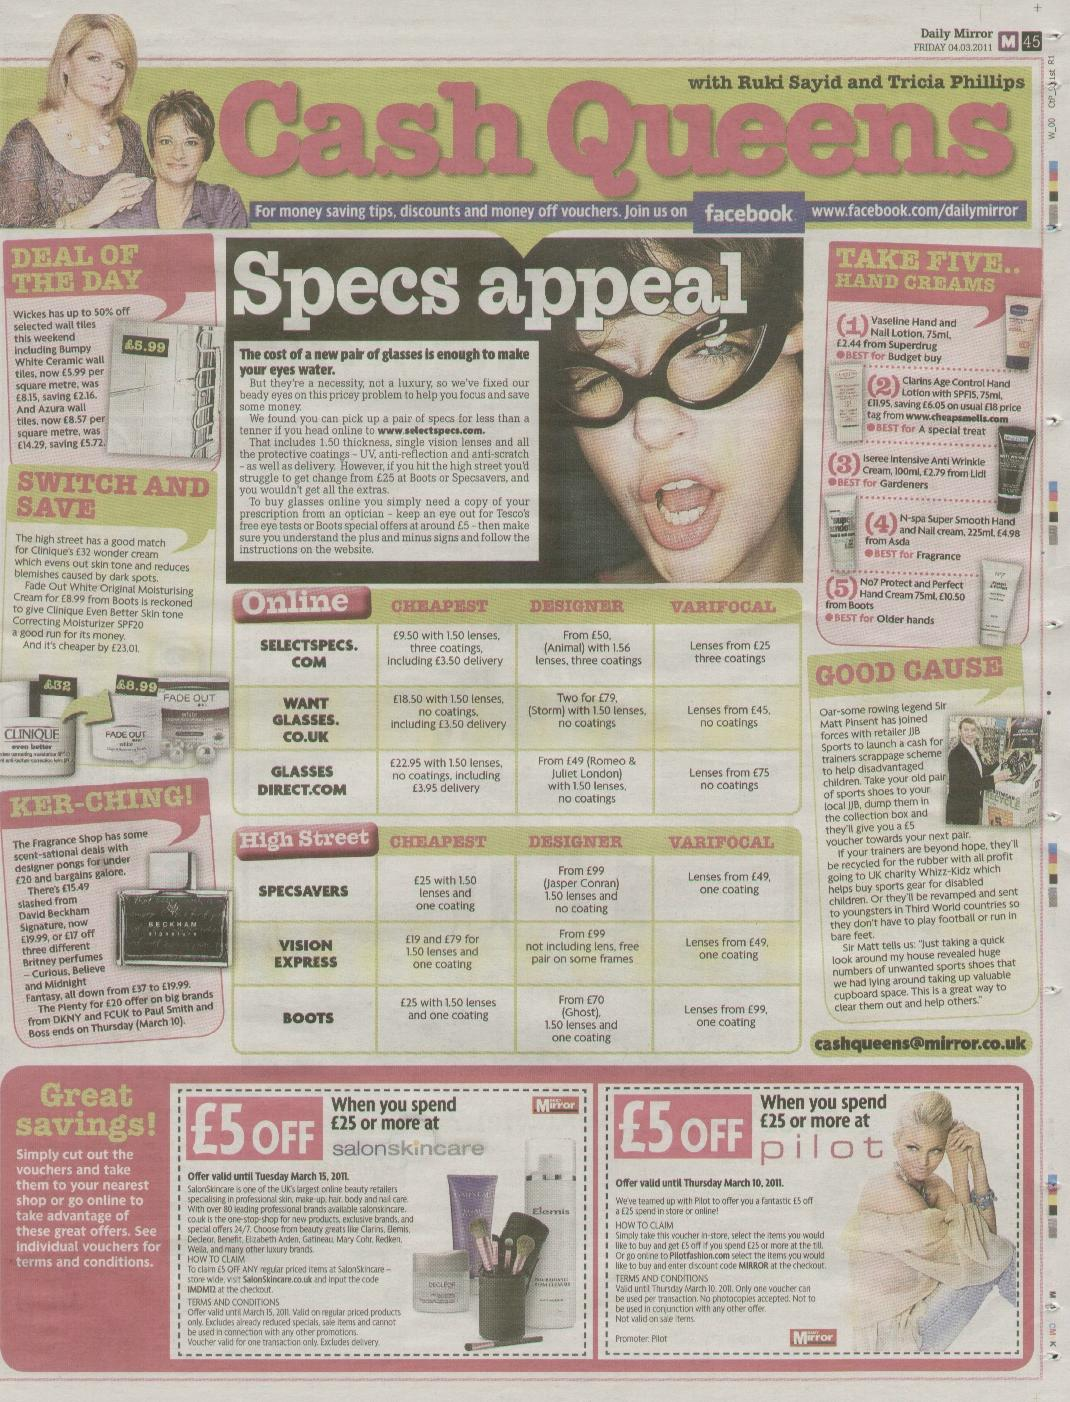 Daily Mirror Cash Queens 4 March 2011